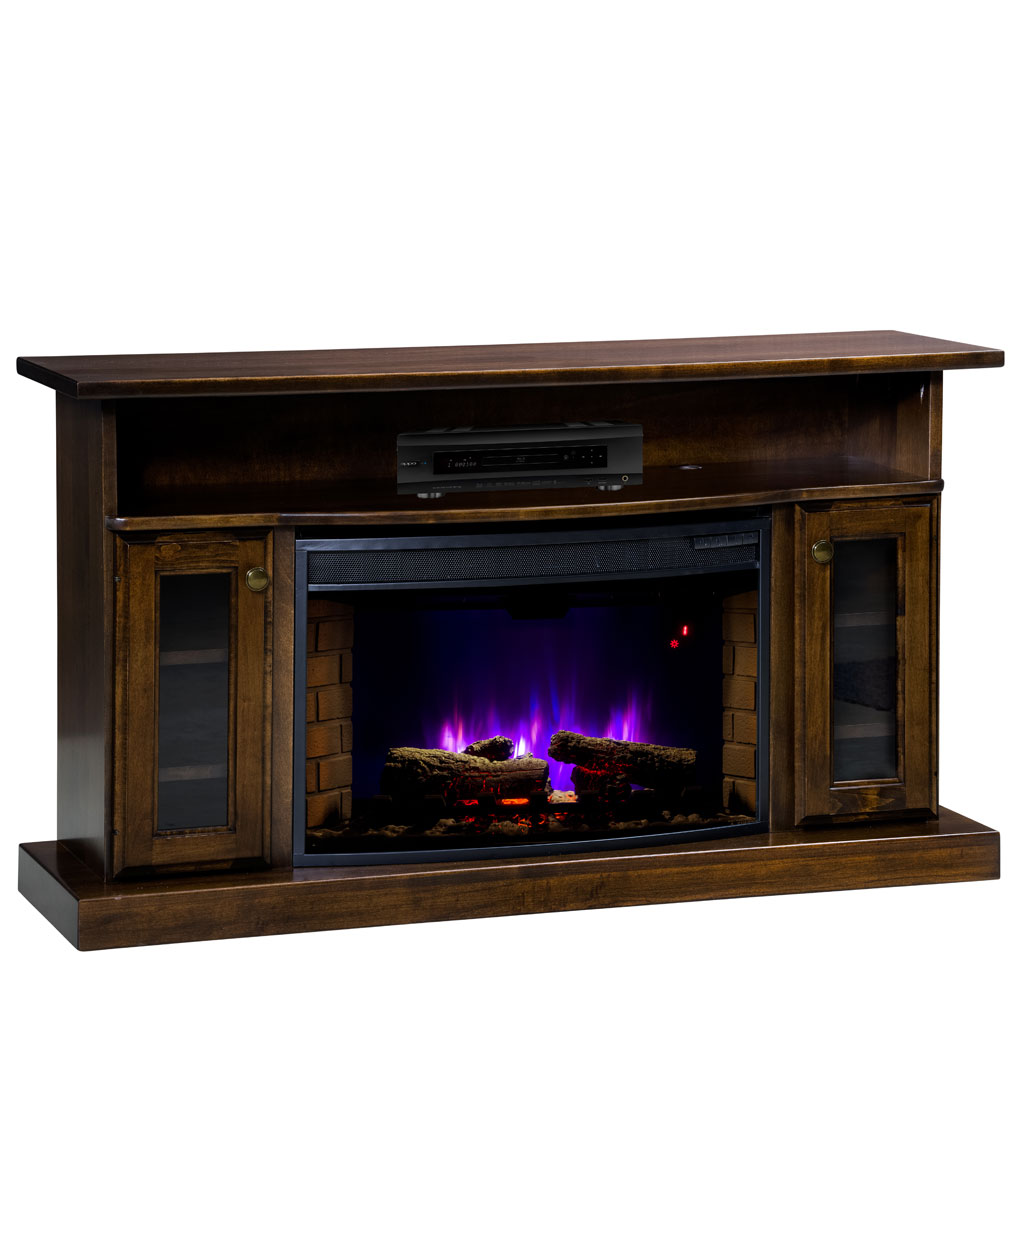 Cheyenne Series Tv Stand With Space Heater 301 Amish